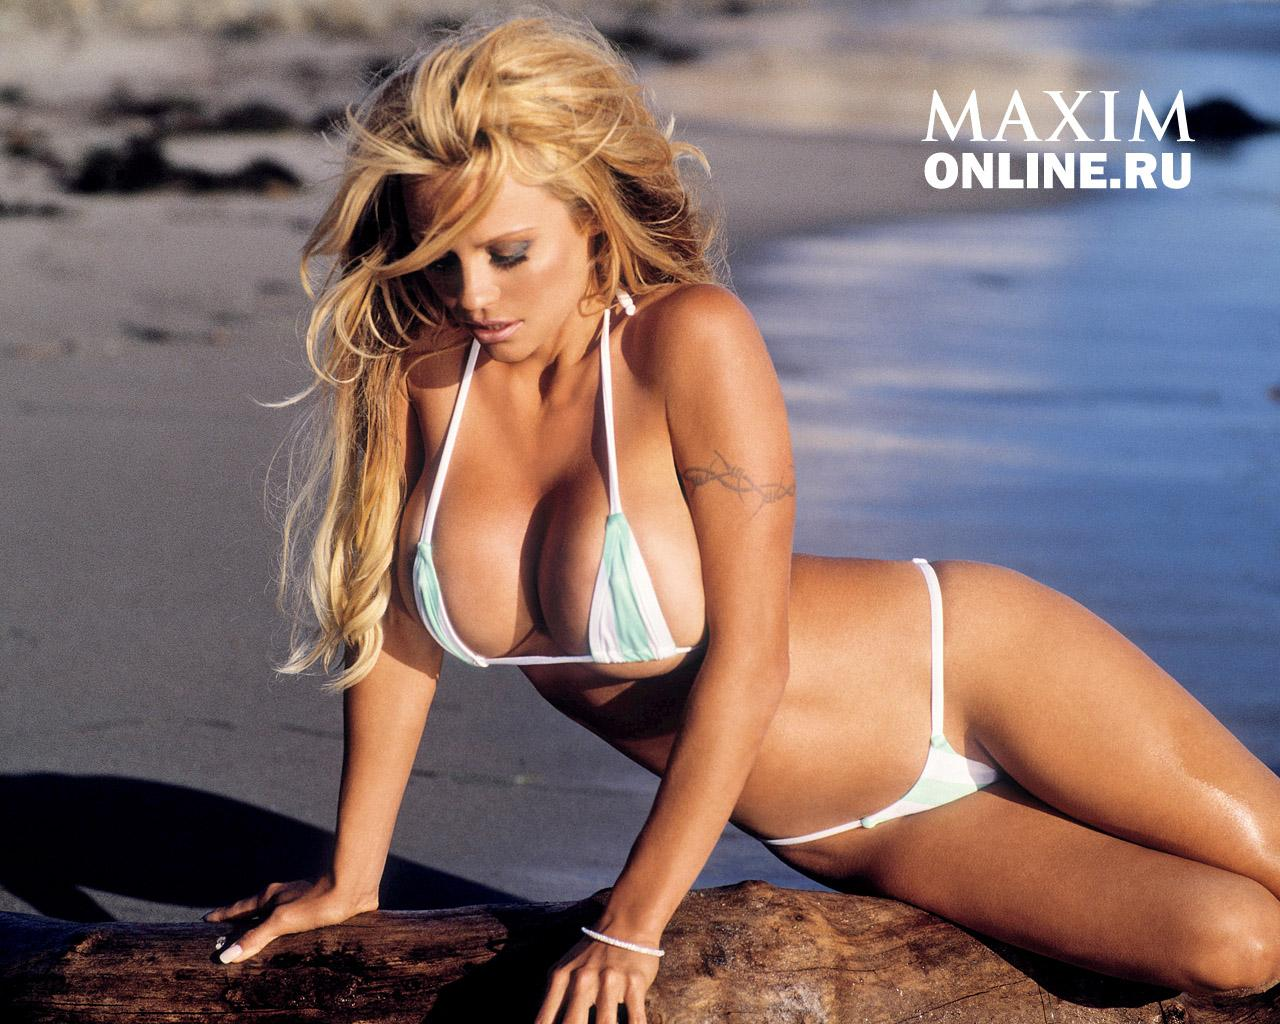 3d Live Animated Wallpaper Download For Windows 7 Download Pamela Anderson Wallpaper Gallery